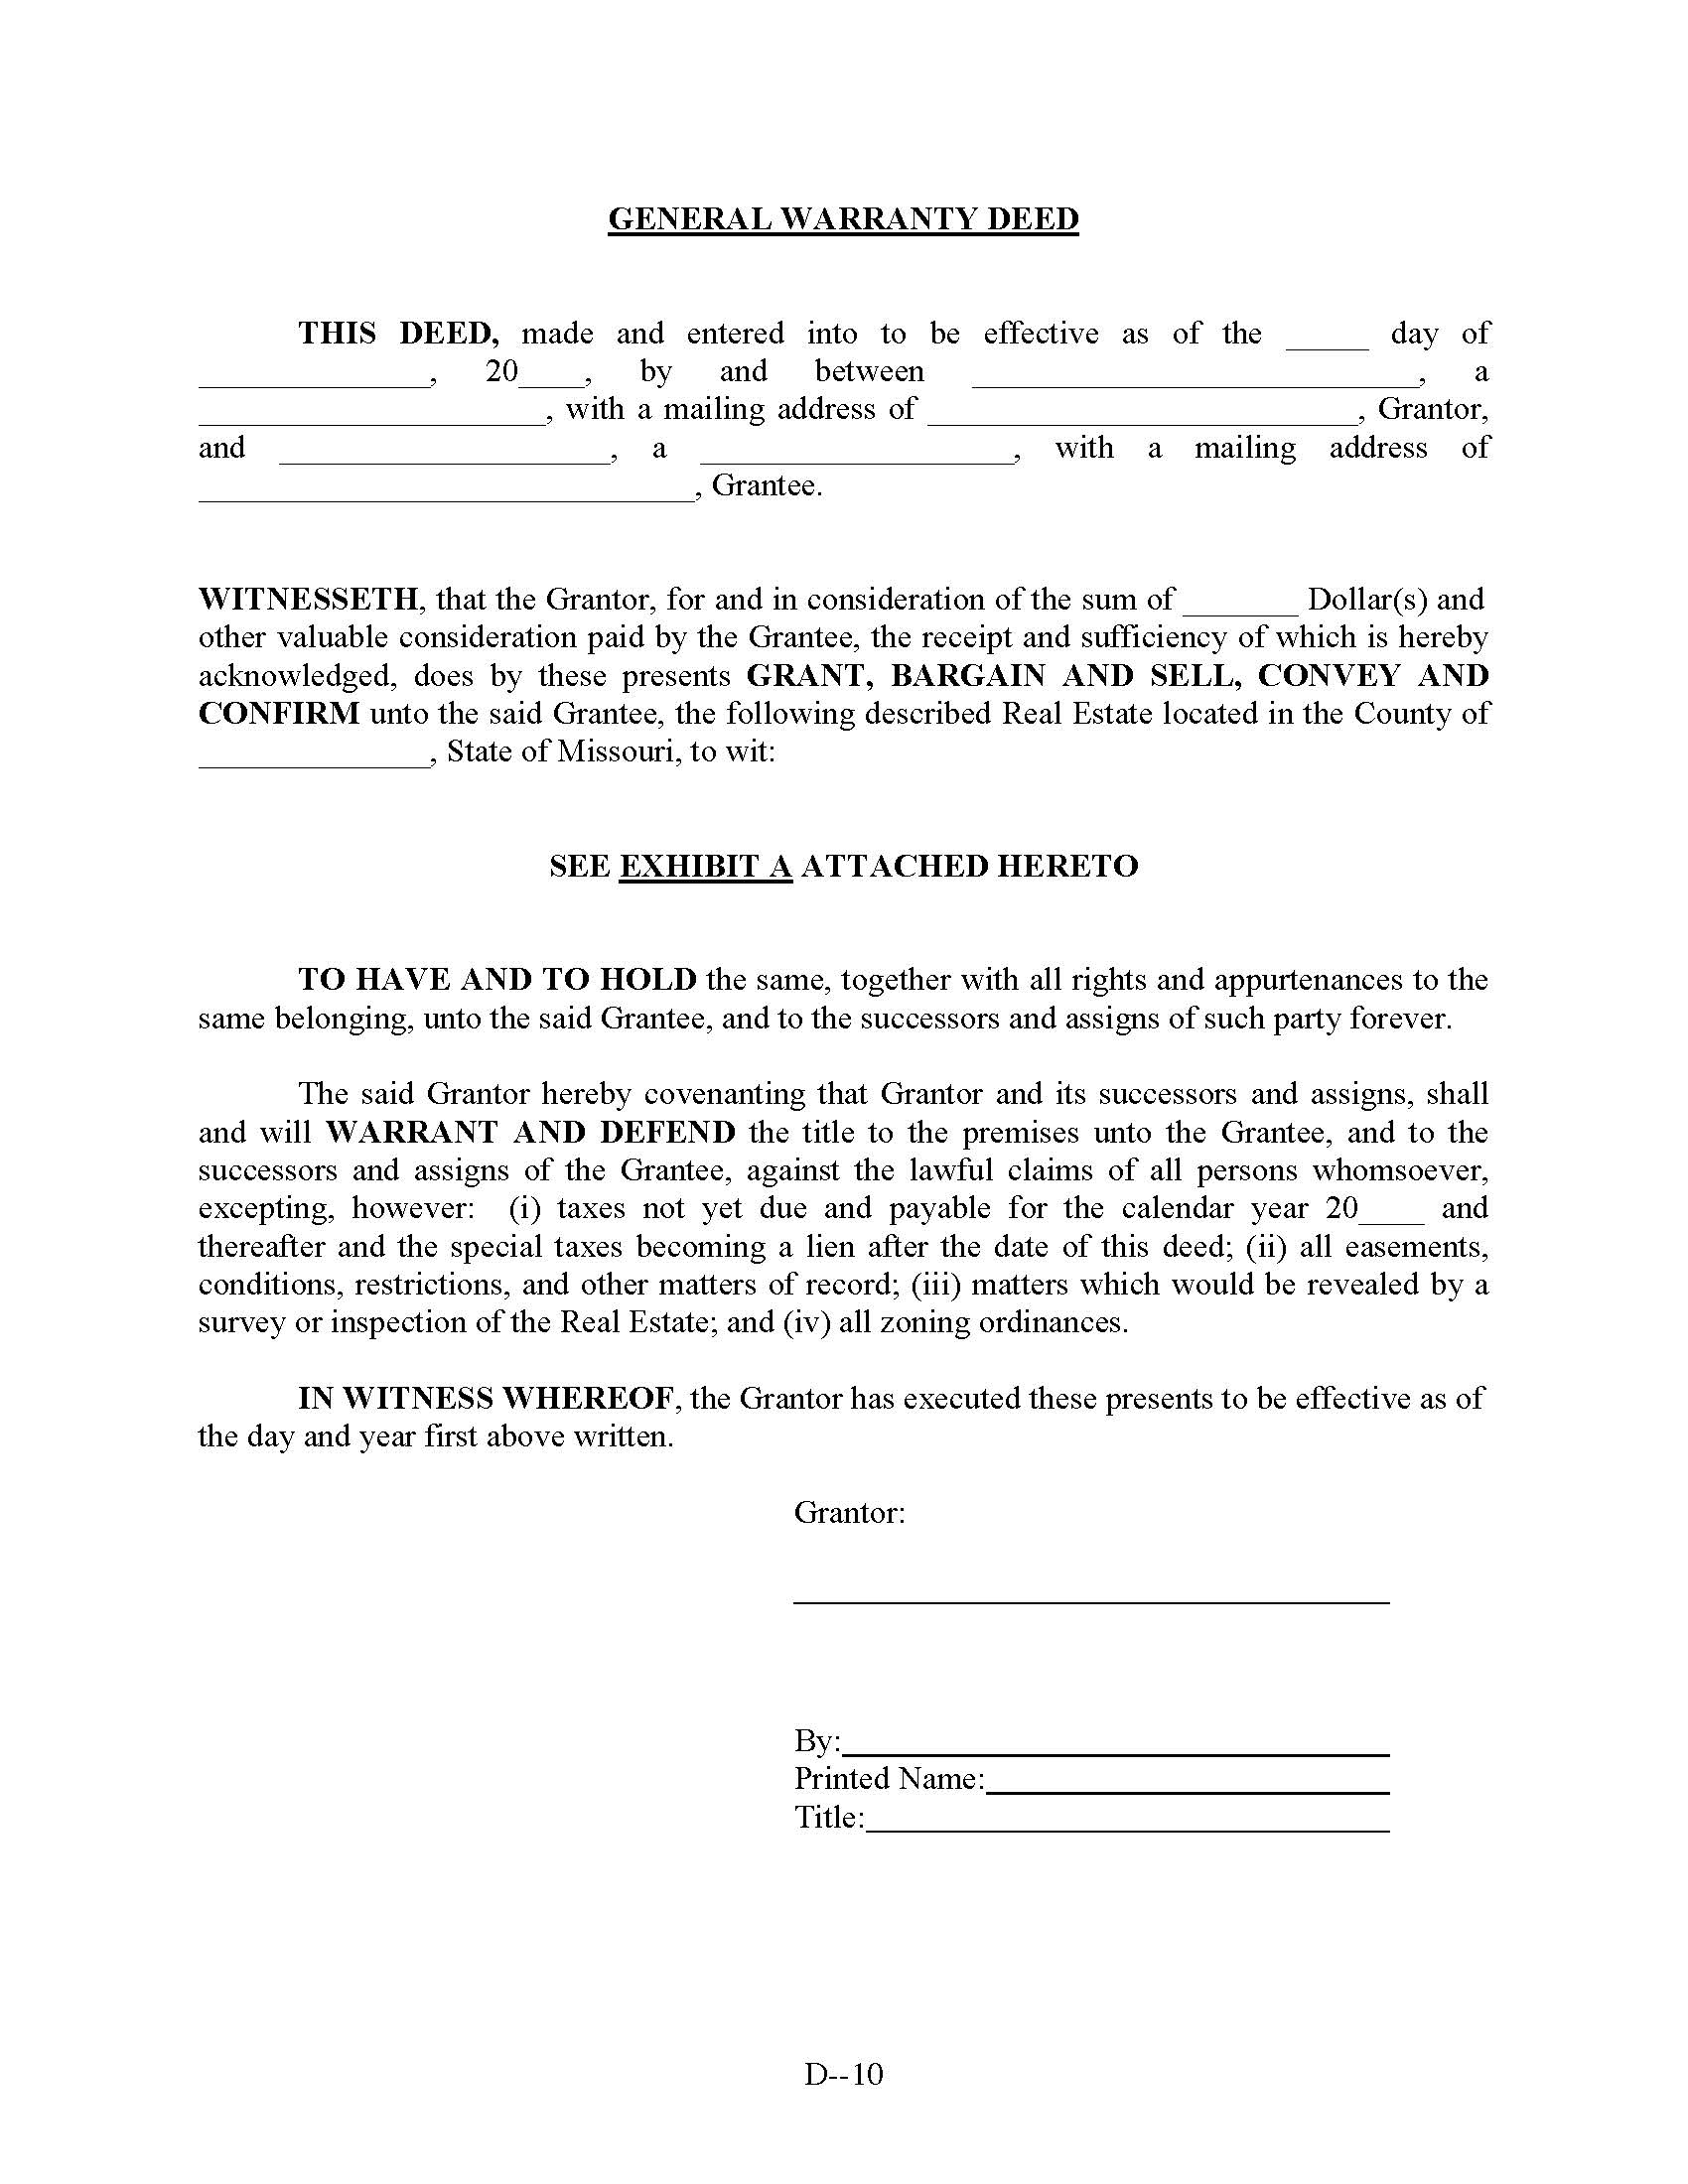 Missouri General Warranty Deed Form Deed Forms Deed Forms – General Warranty Deed